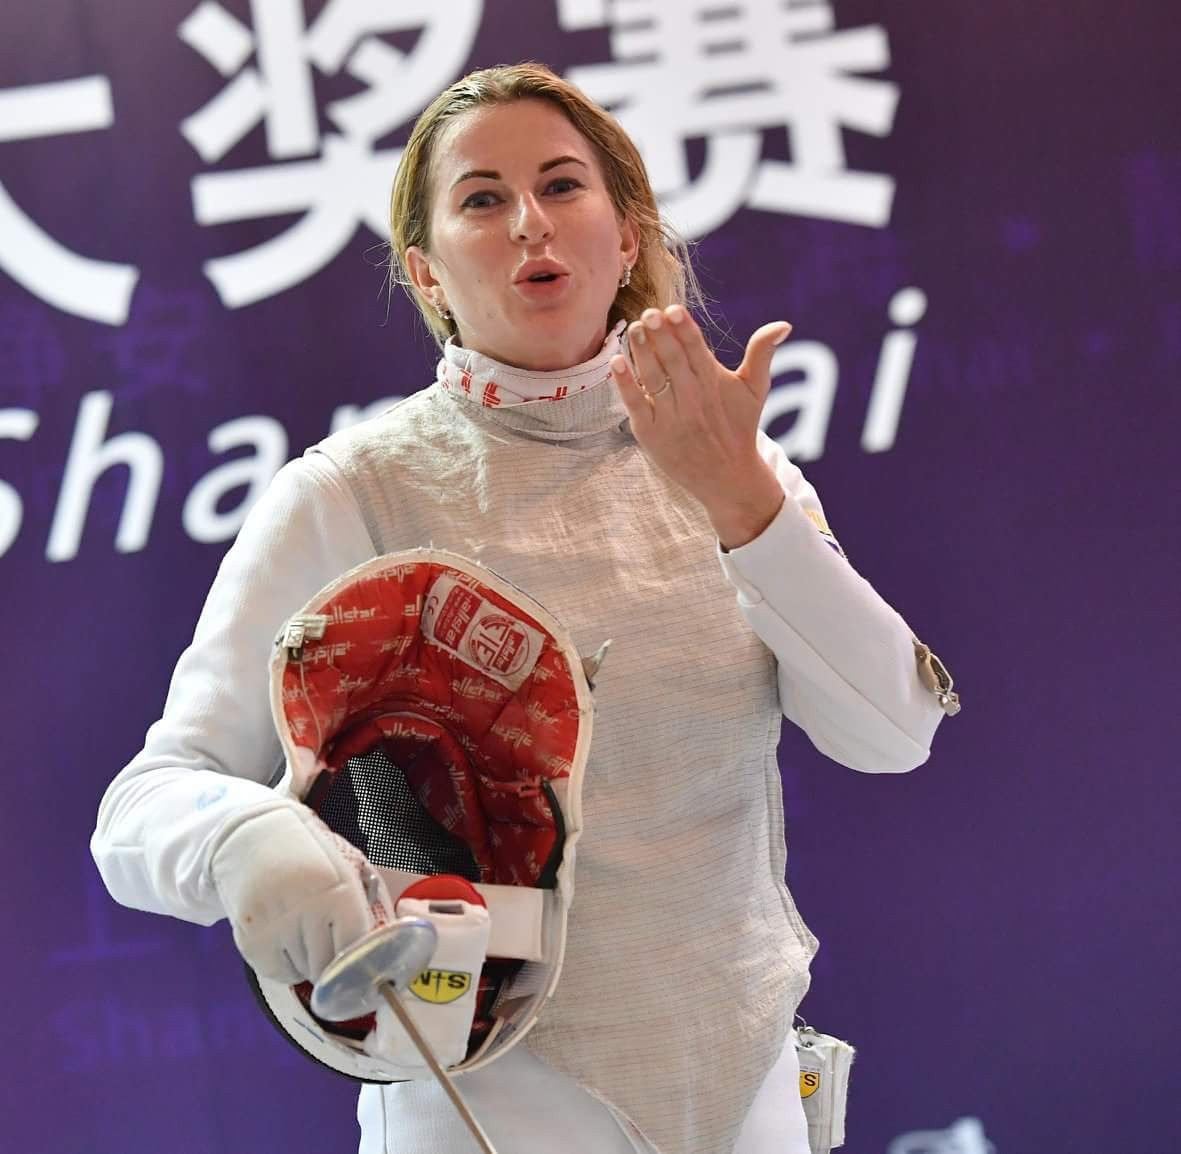 Olympic champion Inna Deriglazova of Russia claimed the women's title at the FIE Grand Prix in Shanghai ©FIE/Twitter